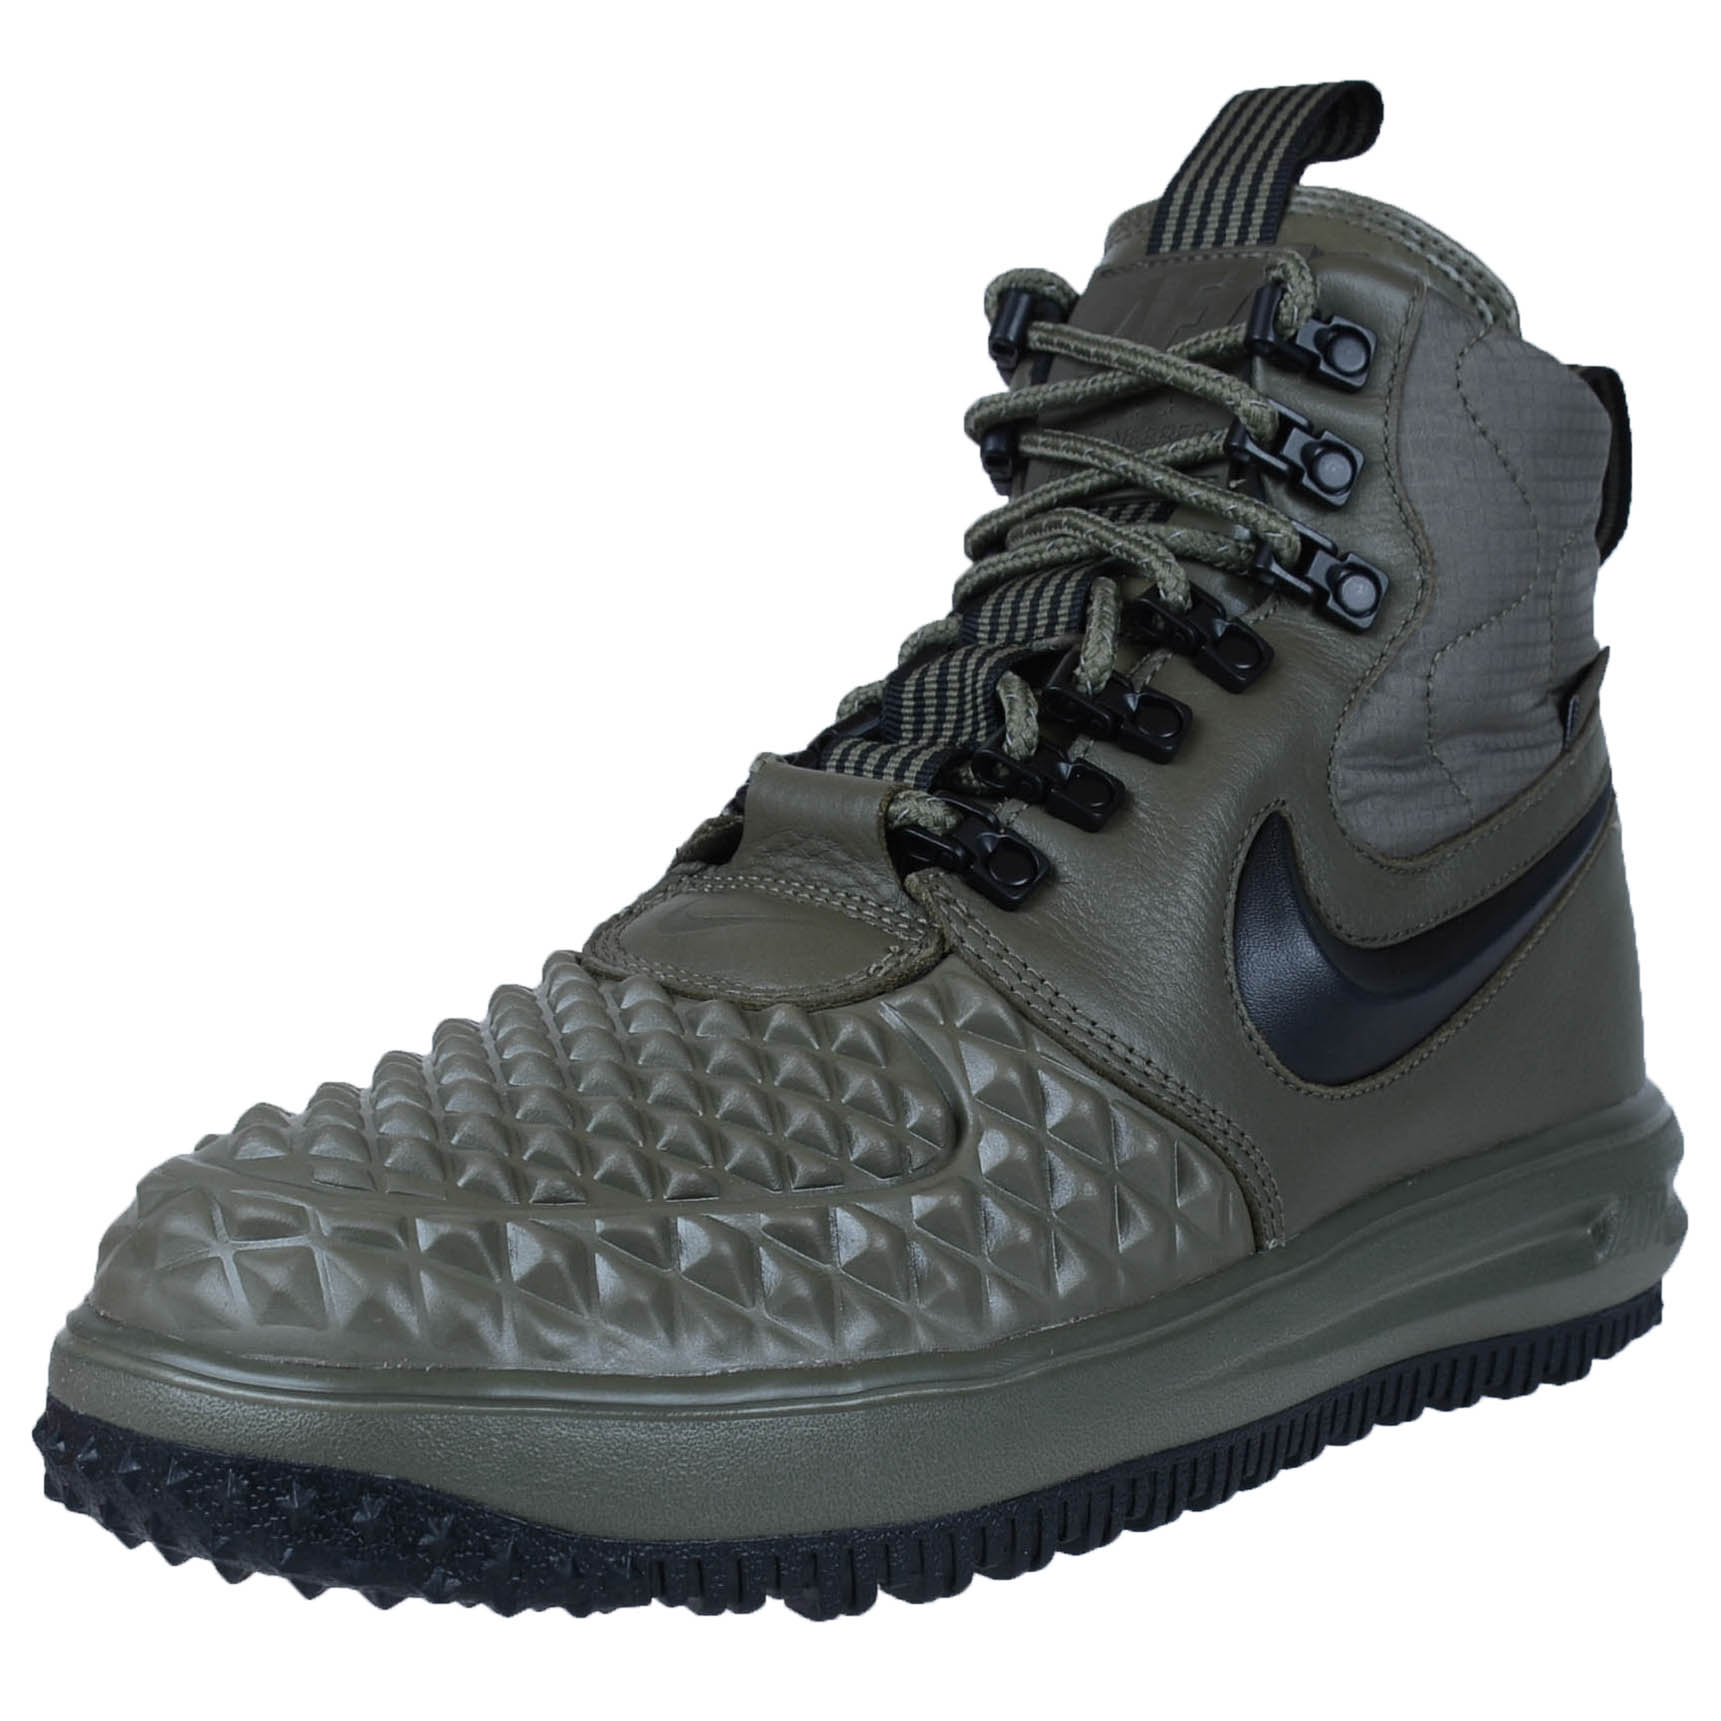 pretty nice 35583 04bf8 ... NIKE LUNAR FORCE 1 DUCKBOOT 17 WATERPROOF BOOTS MEDIUM OLIVE BLACK 916682  202 ...